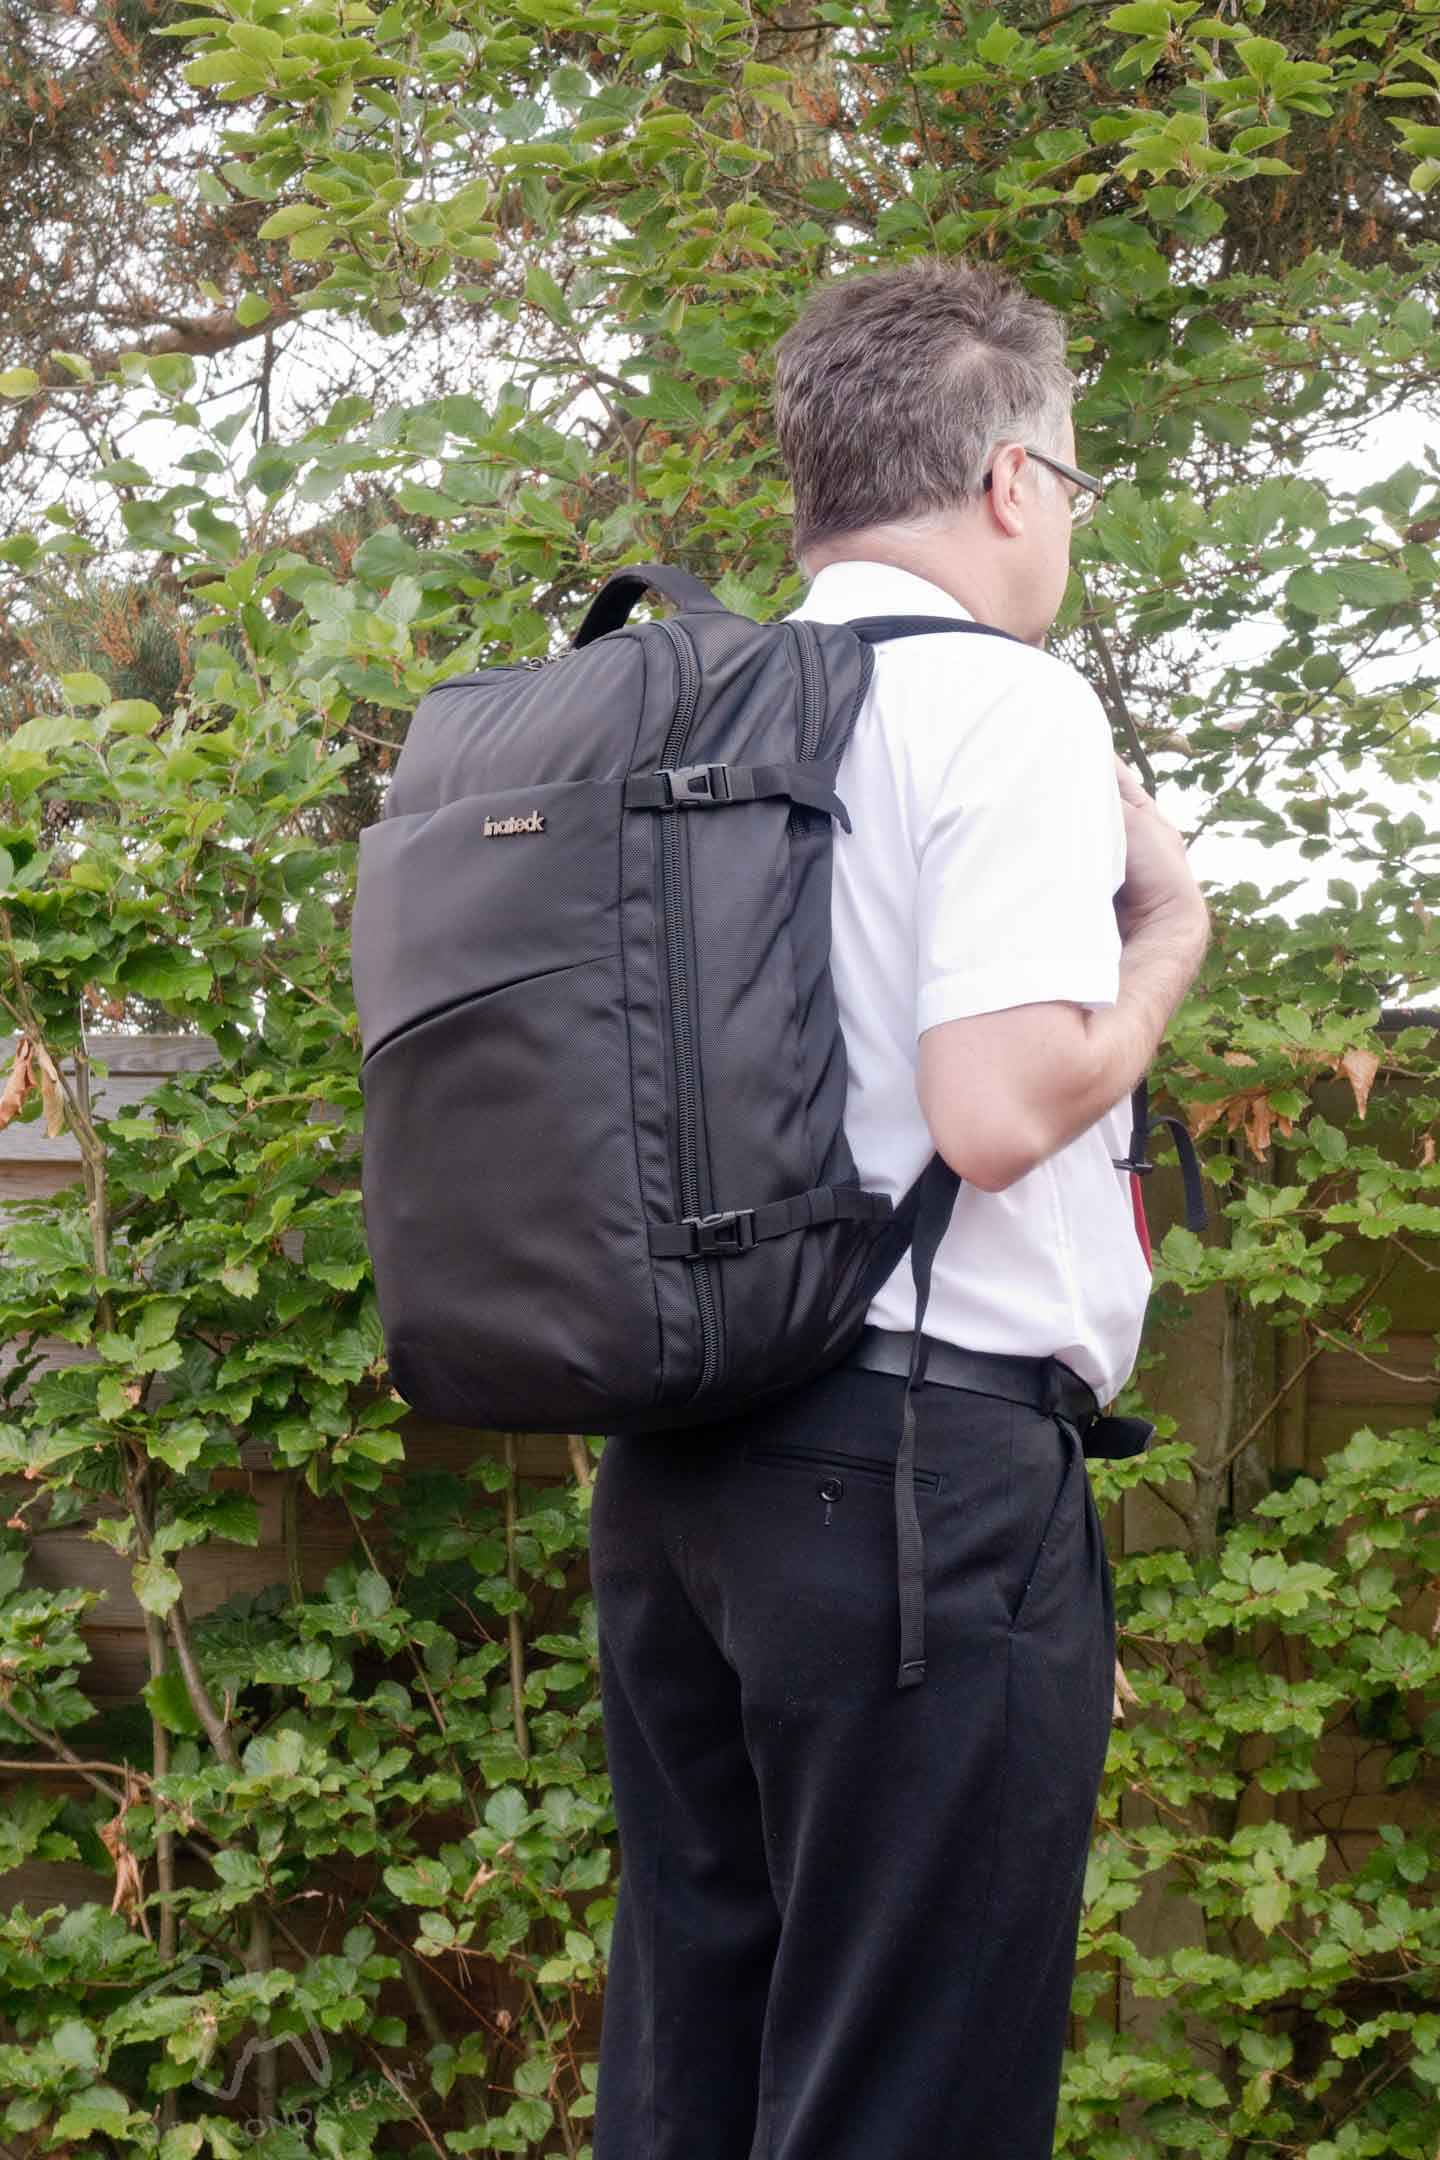 Safely carry your cameras, gadgets and lots more in these Inateck laptop bags. Review which is the best camera backpack, business and laptop bag and sleeve. Your camera and laptop bag problems solved with Inateck – Full 4-bag review on Falcondale Life blog. Image description: Falcondalejan with Inateck 30L business backpack